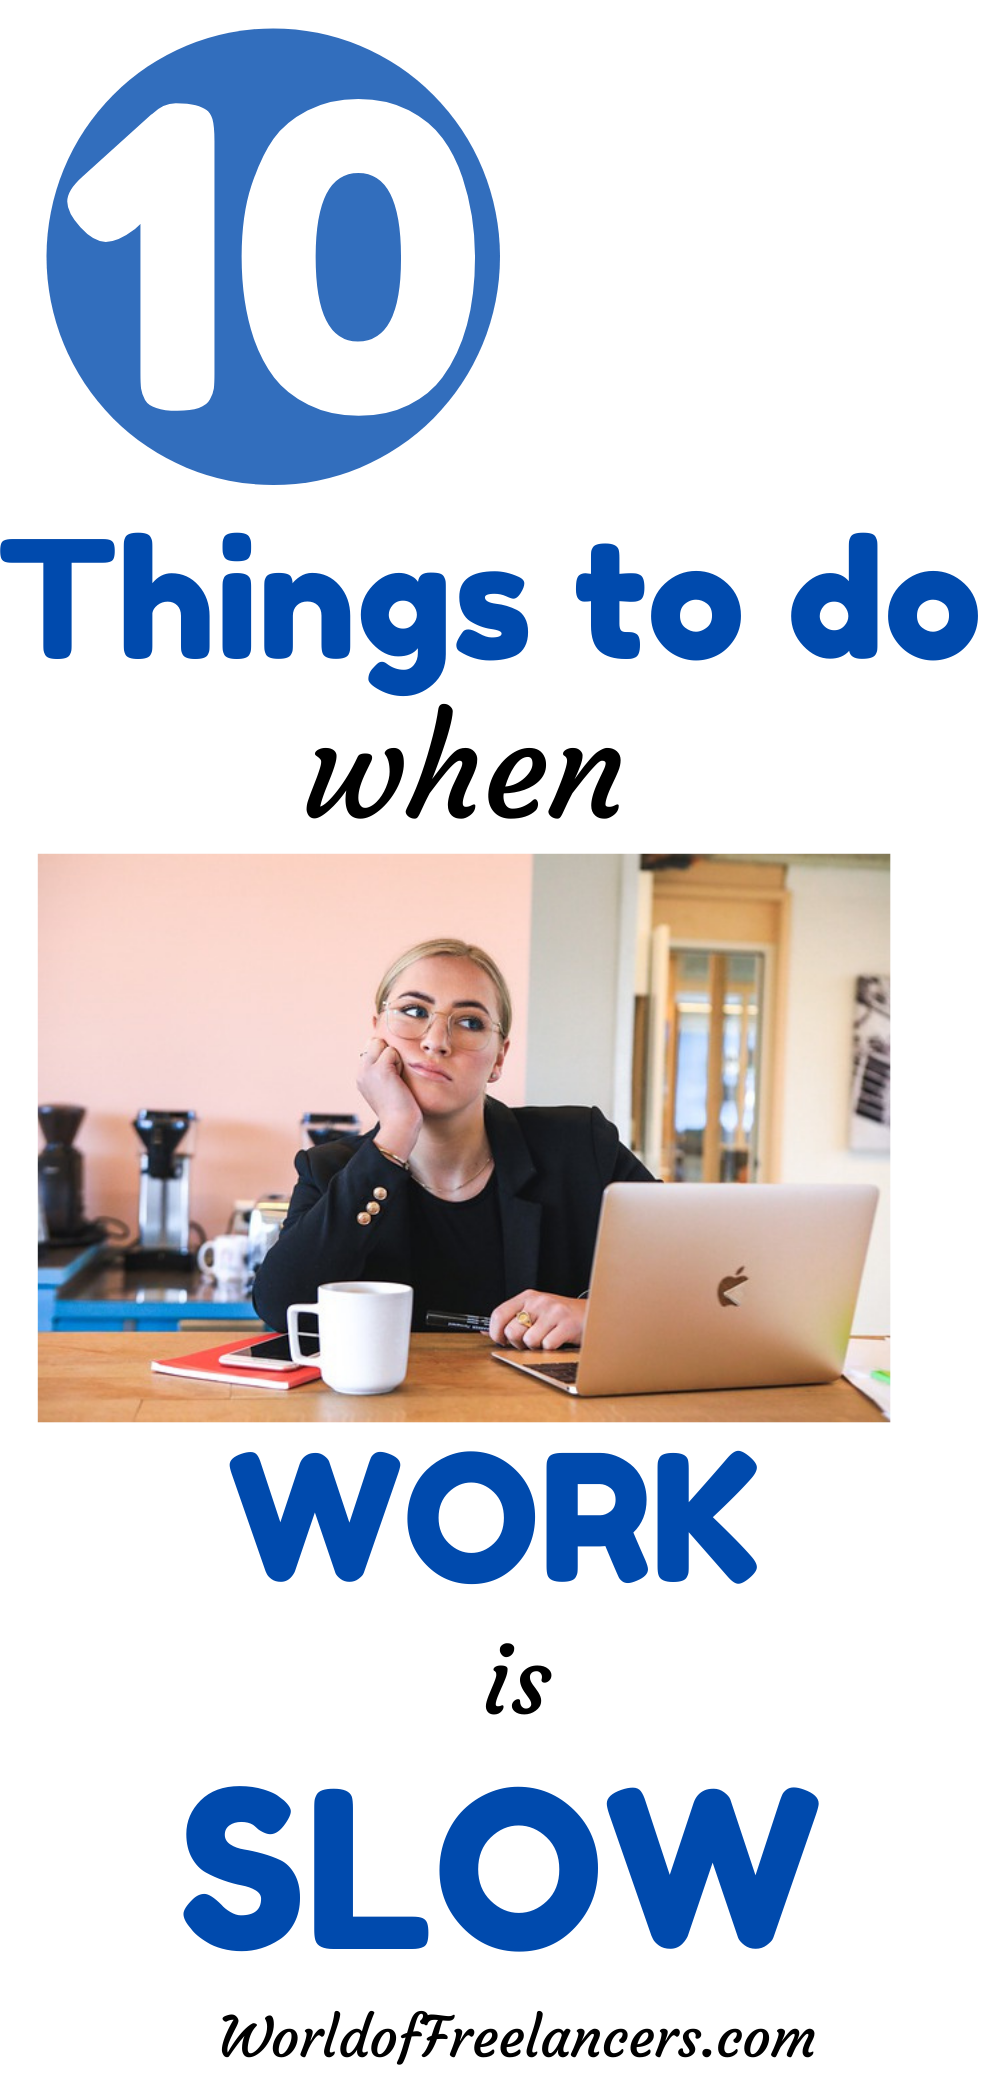 10 things to do when work is slow